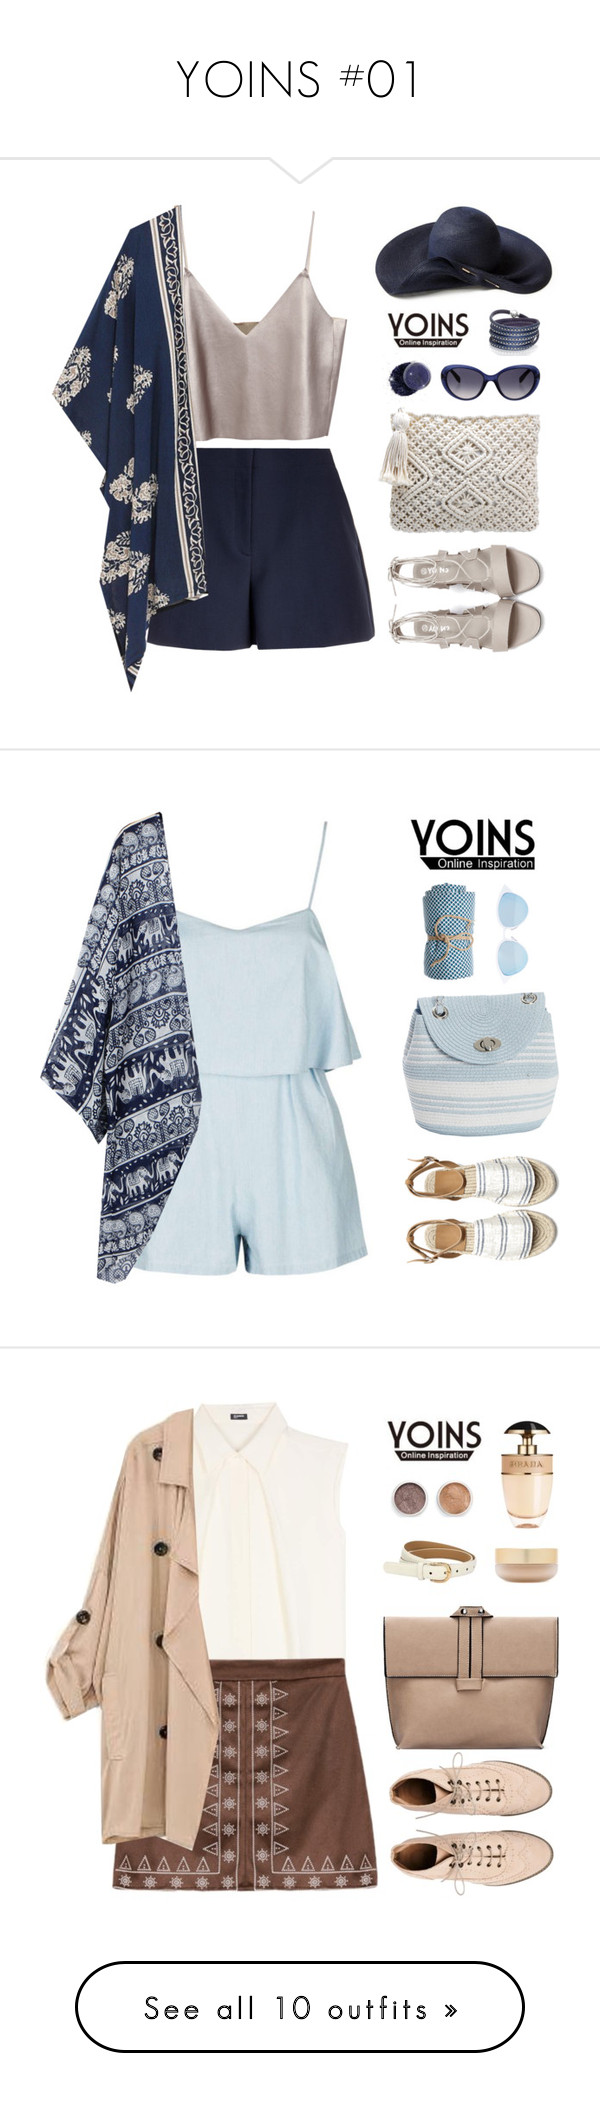 """""""YOINS #01"""" by sweetpastelady ❤ liked on Polyvore featuring outfit, chic, fab, yoins, Theory, Sif Jakobs Jewellery, Emilio Pucci, Banana Republic, Magid and Calypso St. Barth"""